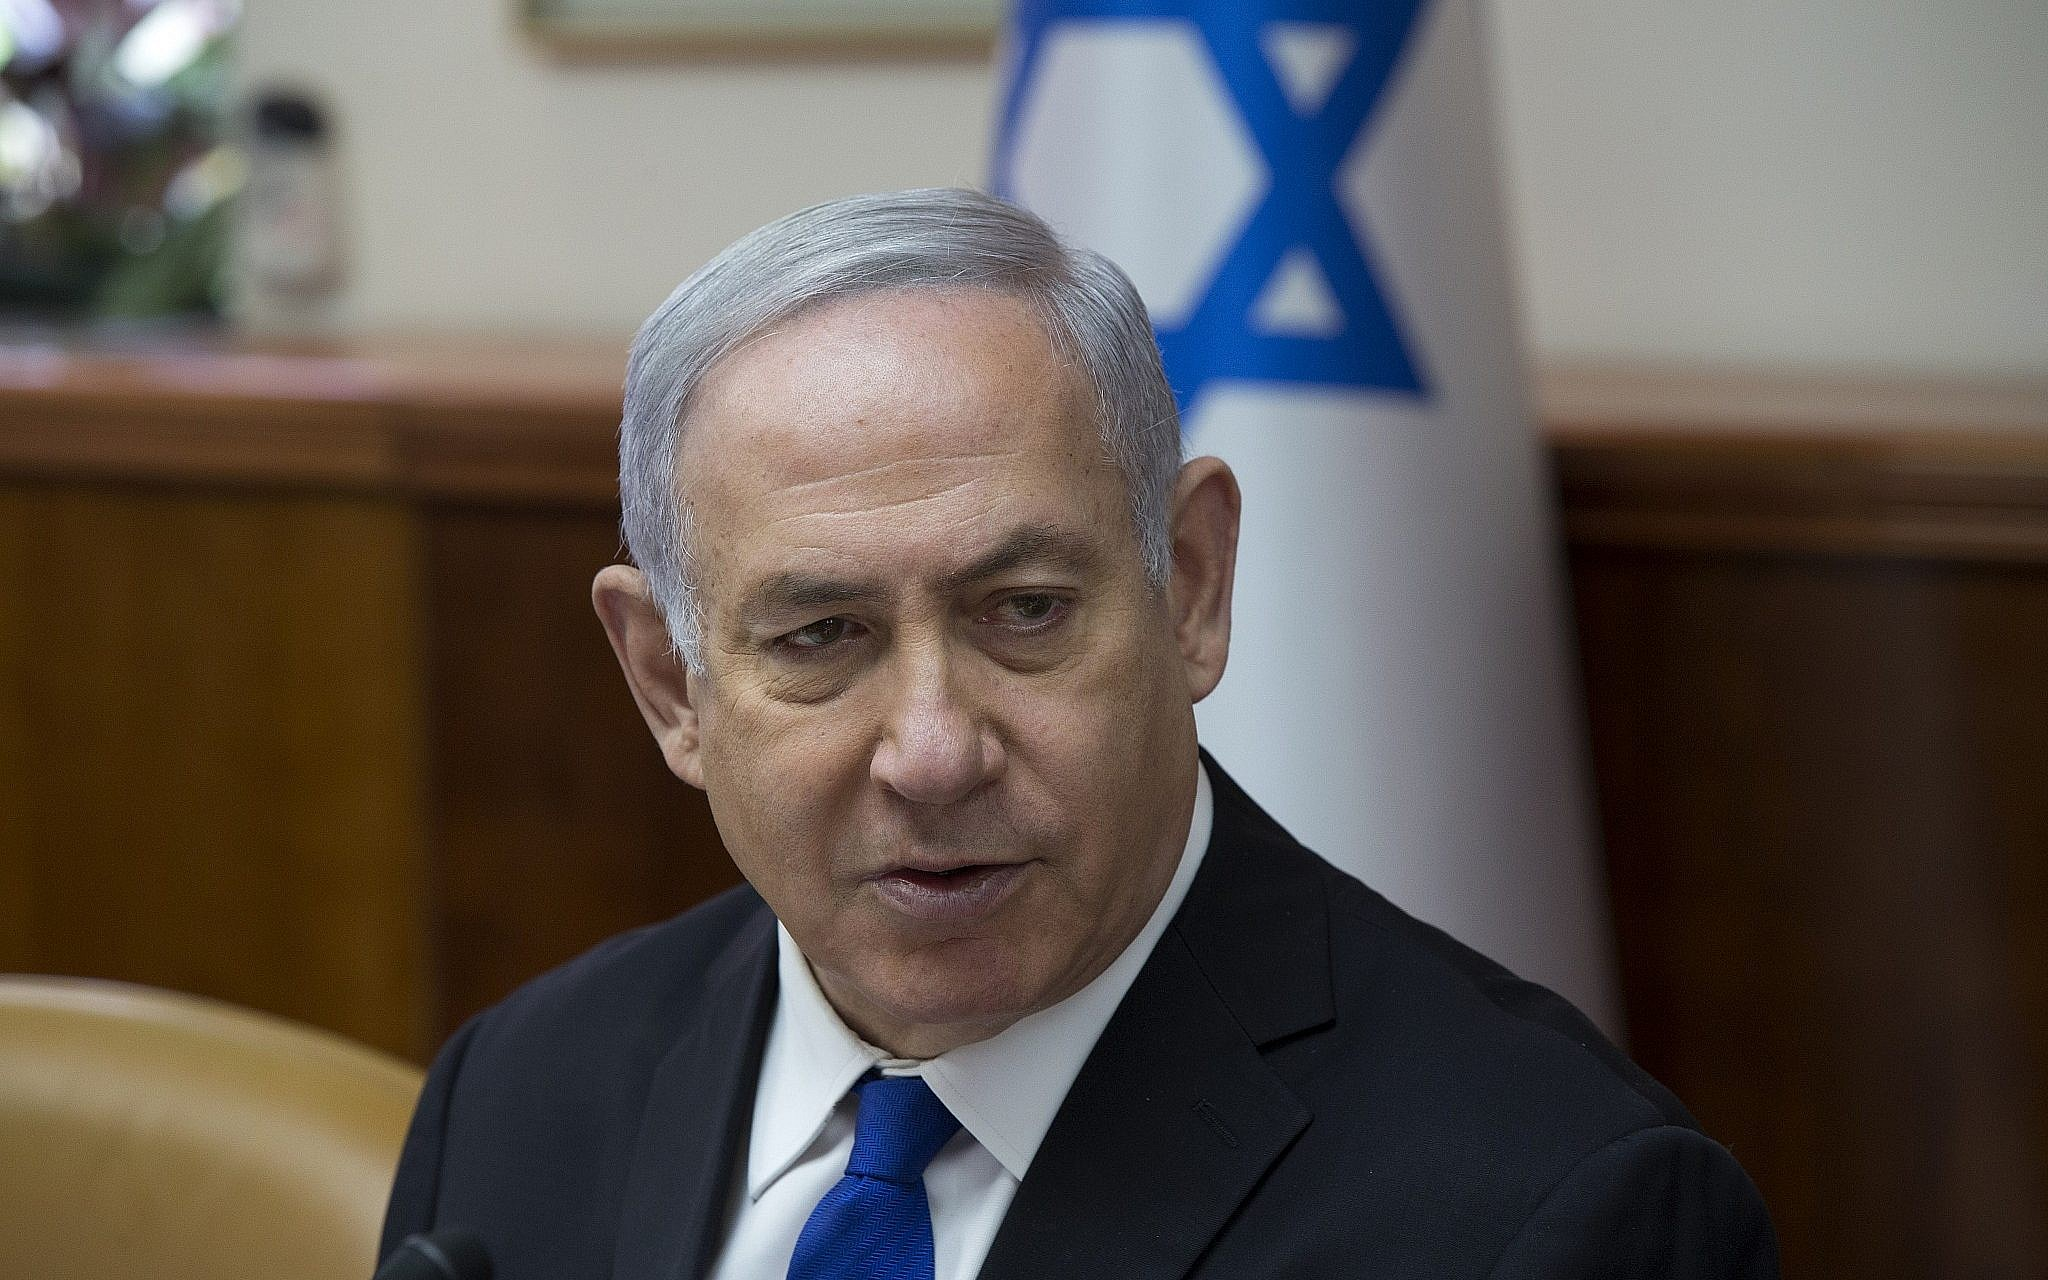 Will Netanyahu's Dramatic Iran Announcement Sway Trump?